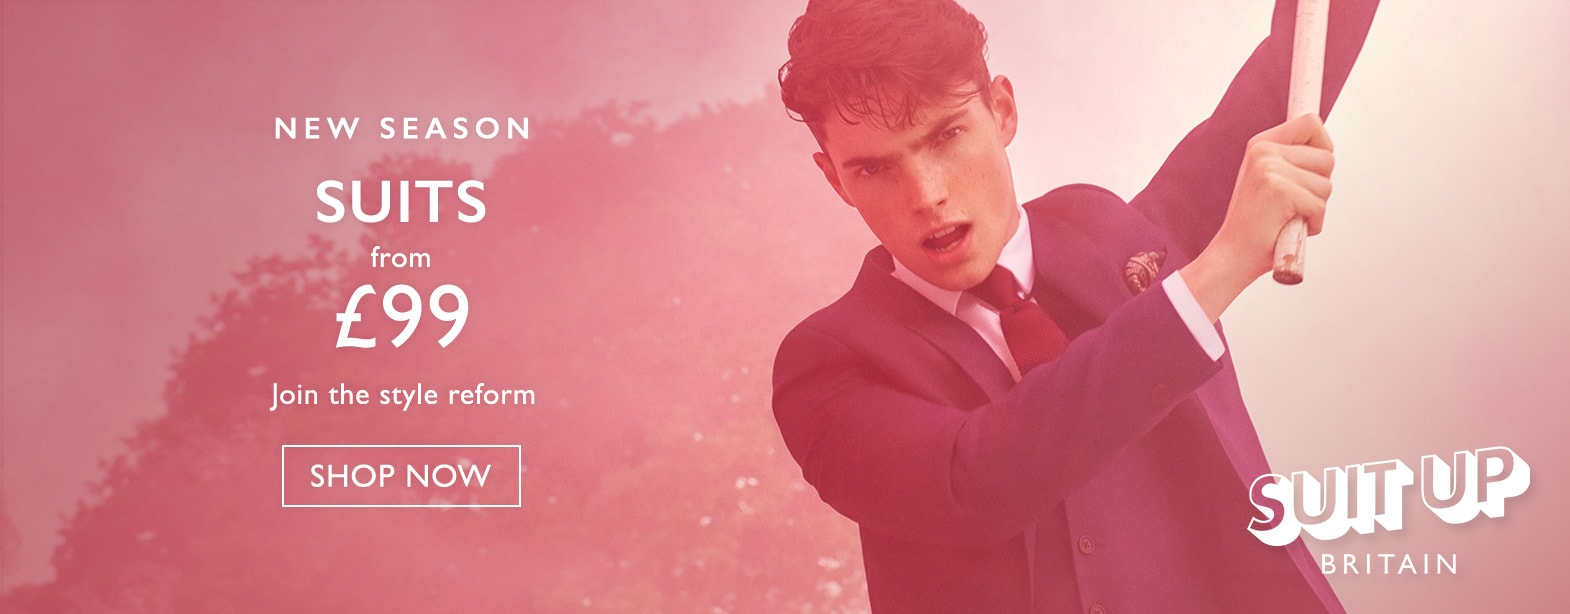 Moss Bros Moss Bros: new season suits from £99